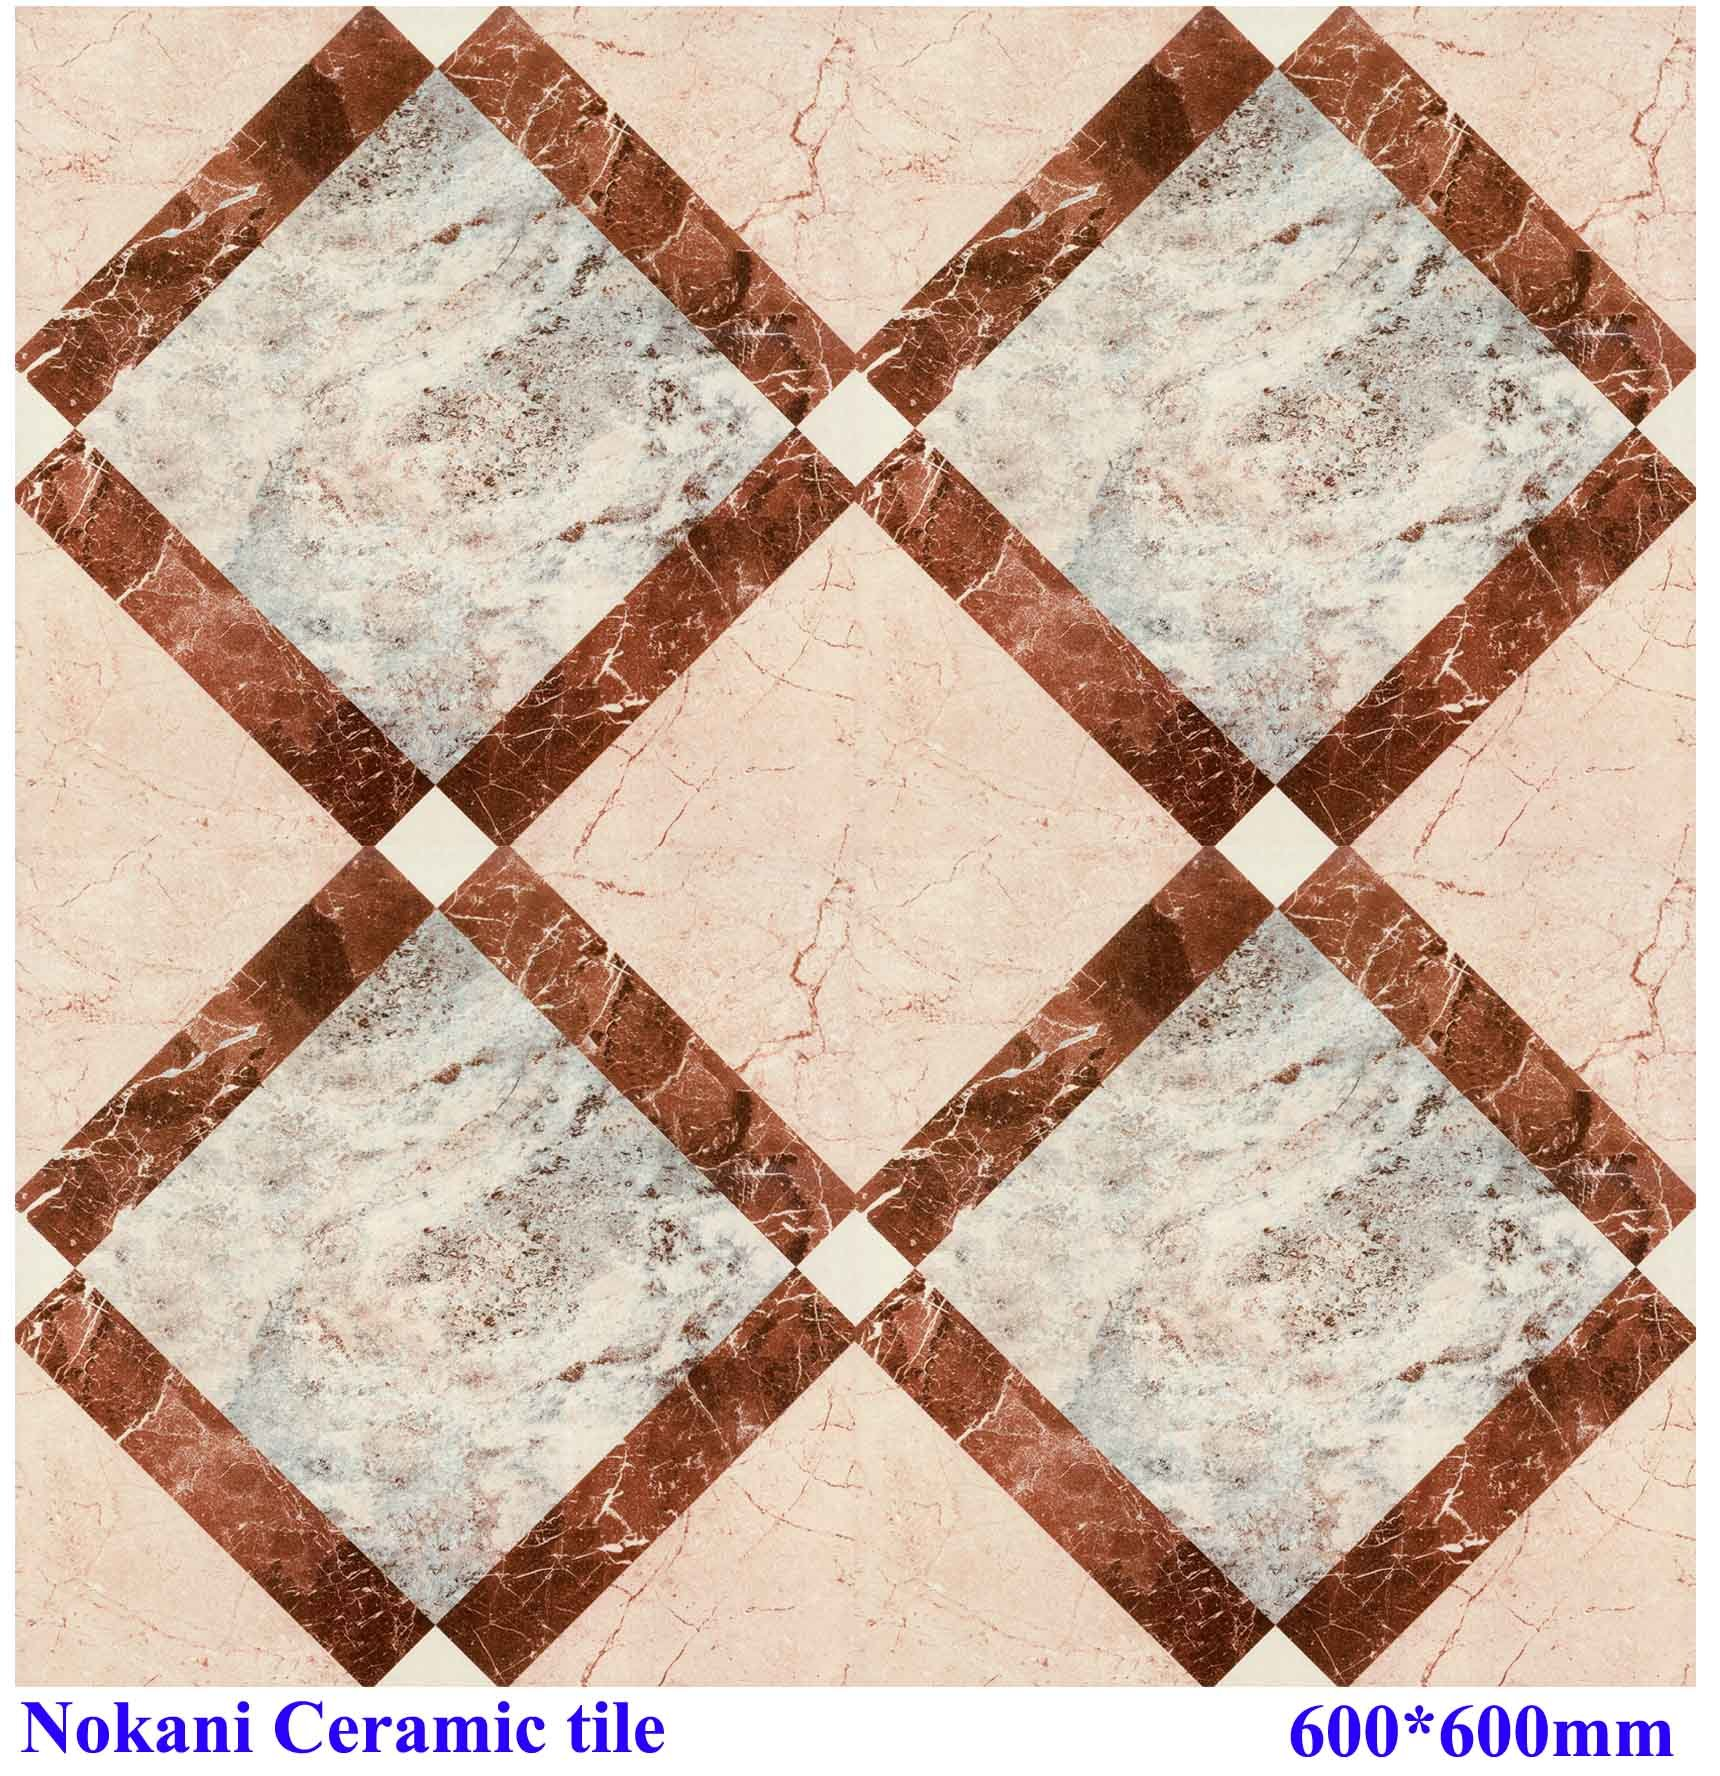 Ceramic tile company designs and makes floor tiles